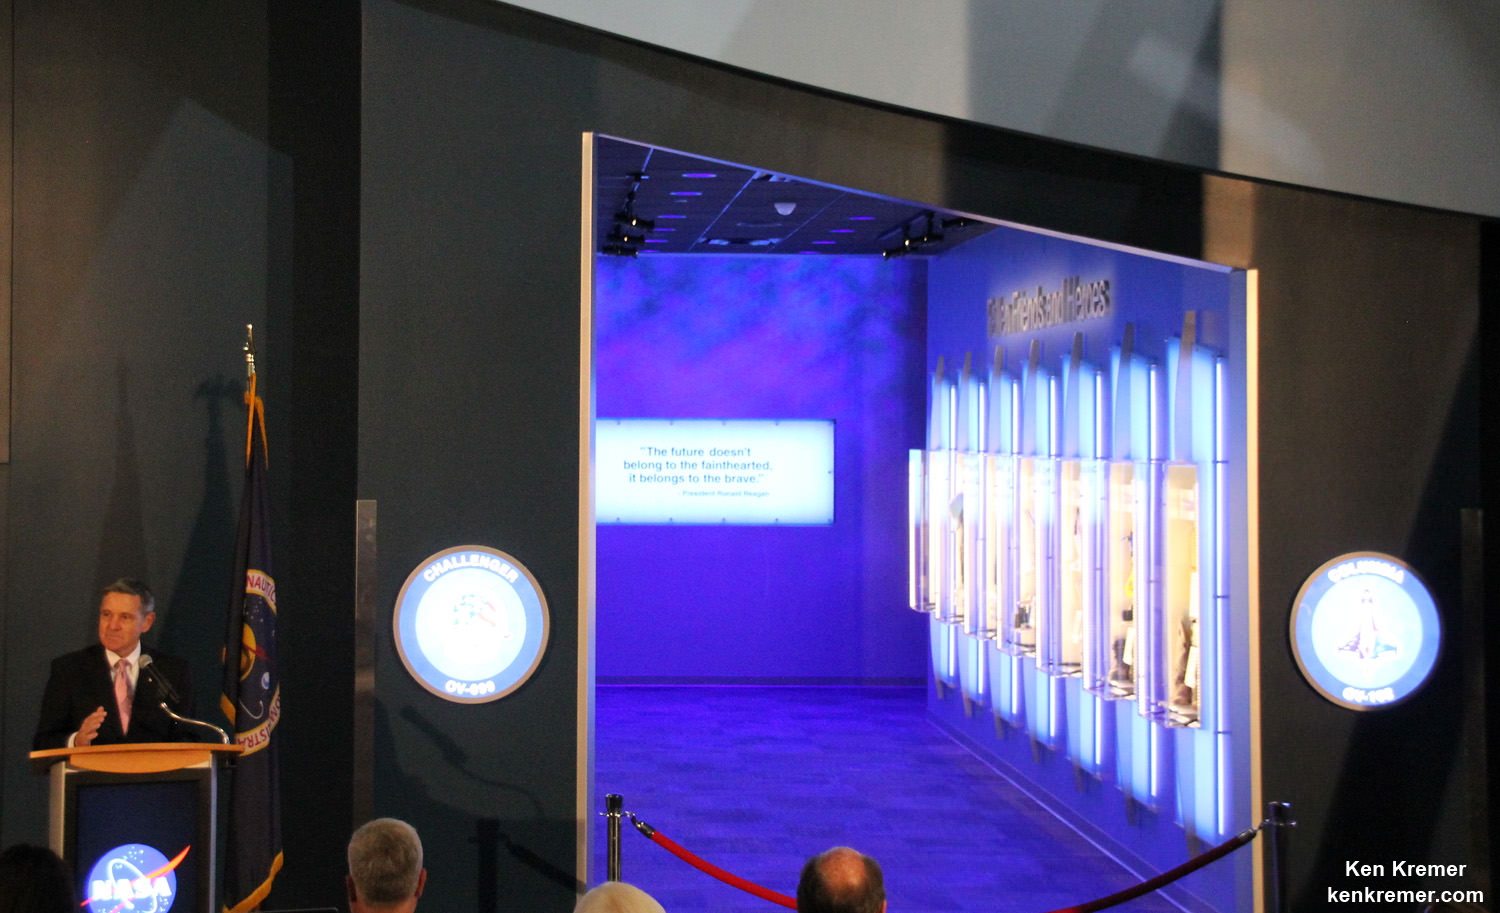 "Kennedy Space Center Director Bob Cabana officially opens the ""Forever Remembered"" memorial tribute to the fallen crews of the Columbia and Challenger Space Shuttle orbiters in the Space Shuttle Atlantis exhibit at the Kennedy Space Center Visitor Complex in Florida on June 27, 2015.  Credit: Ken Kremer/kenkremer.com"